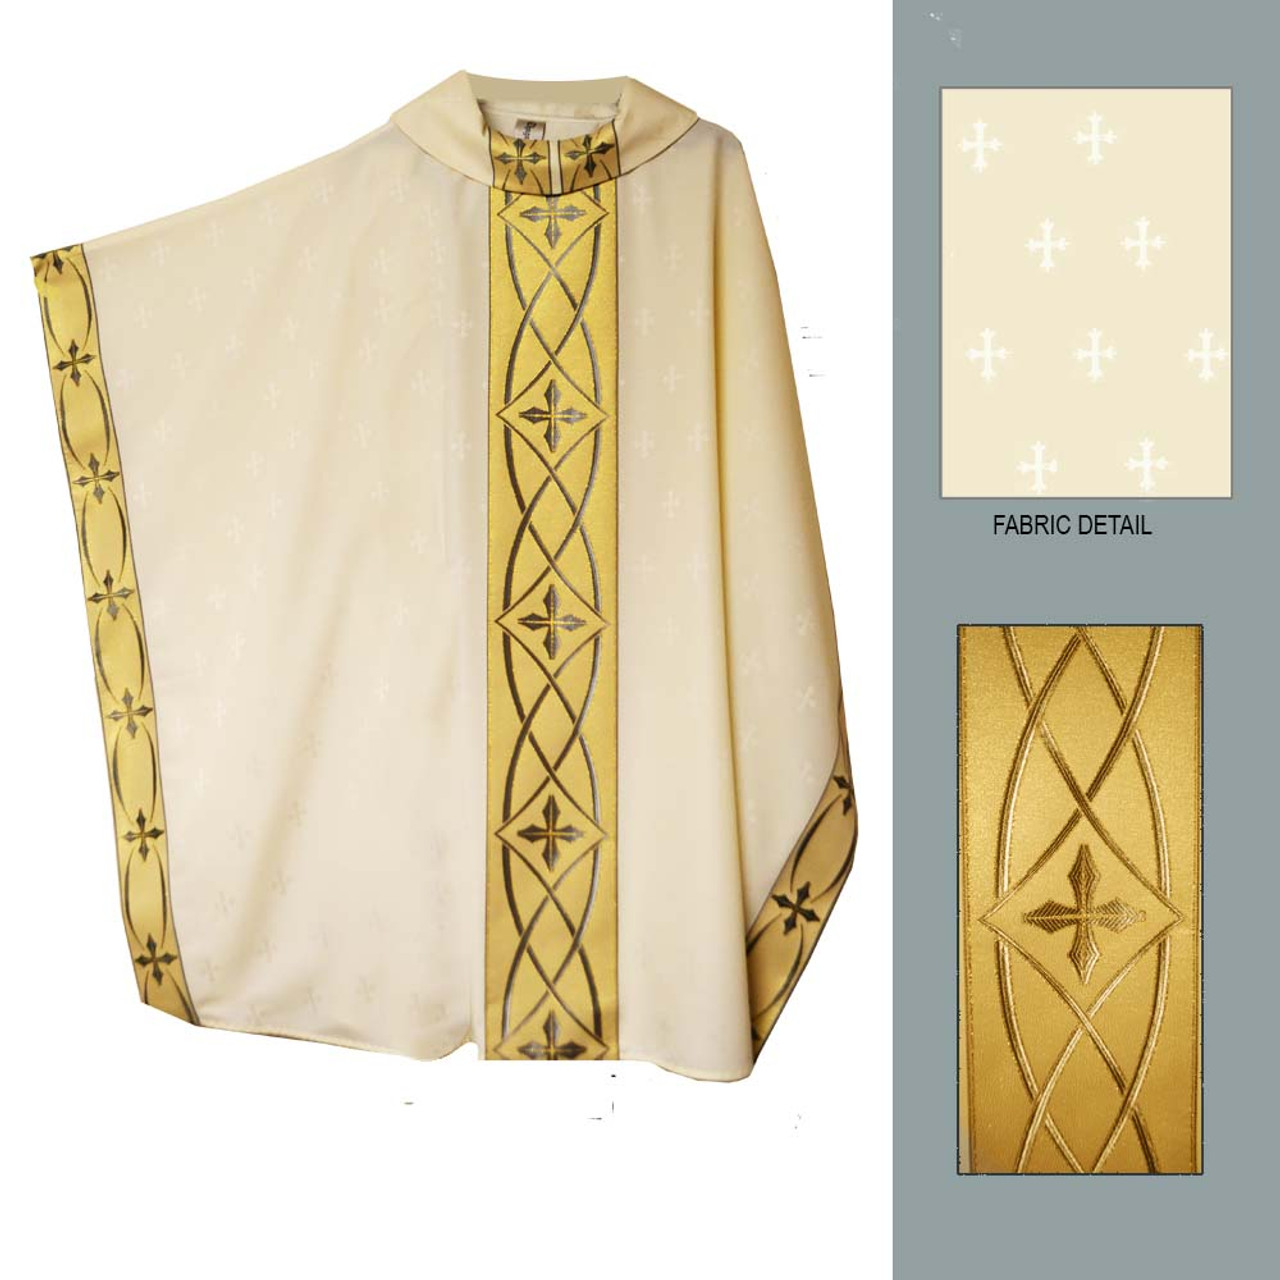 04-105 White Chasuble from Chagall